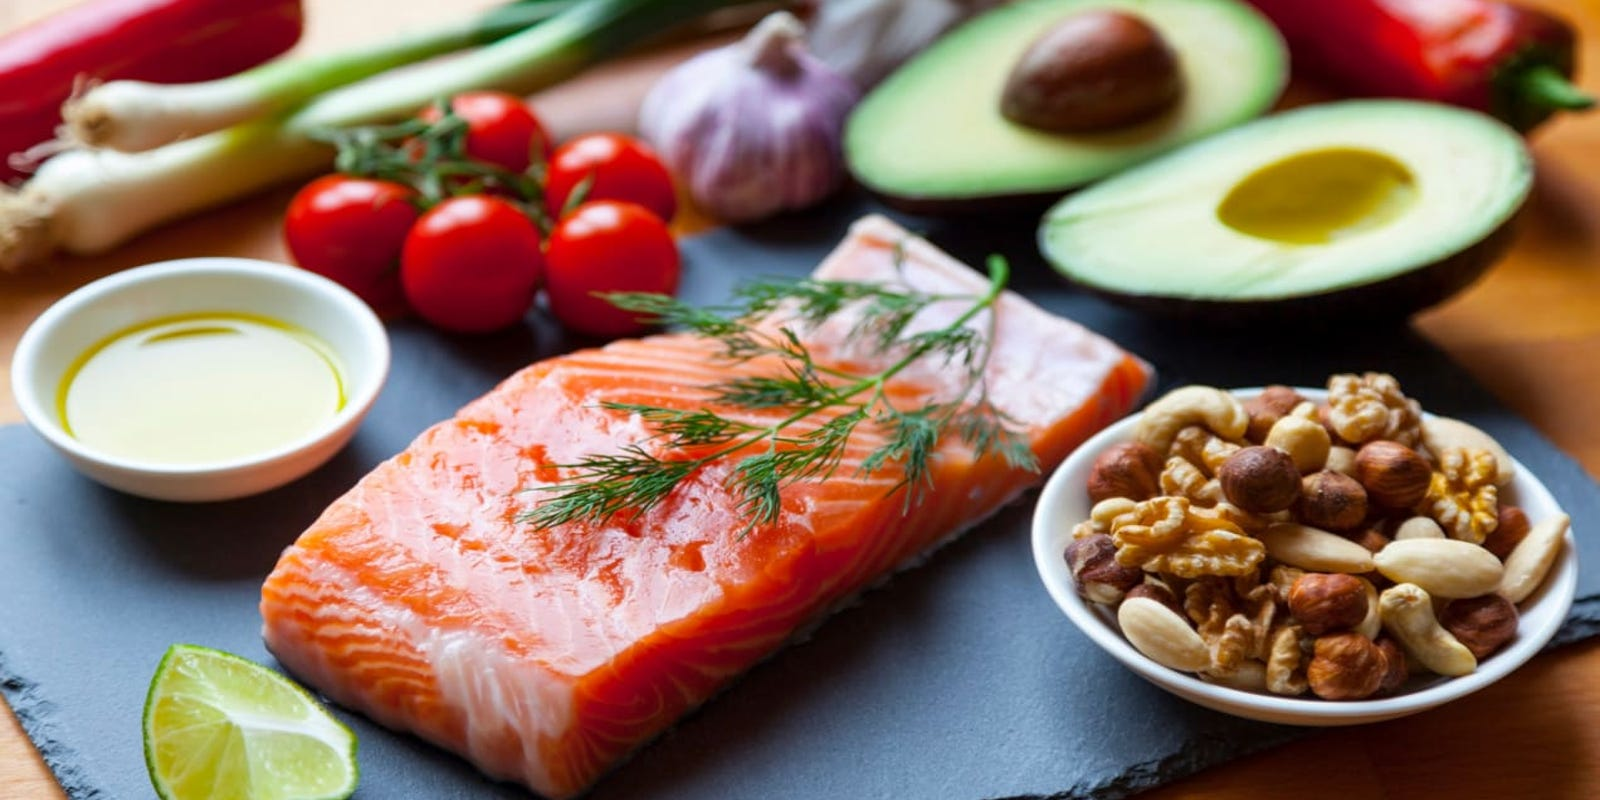 10 things you need if you're trying the Mediterranean diet